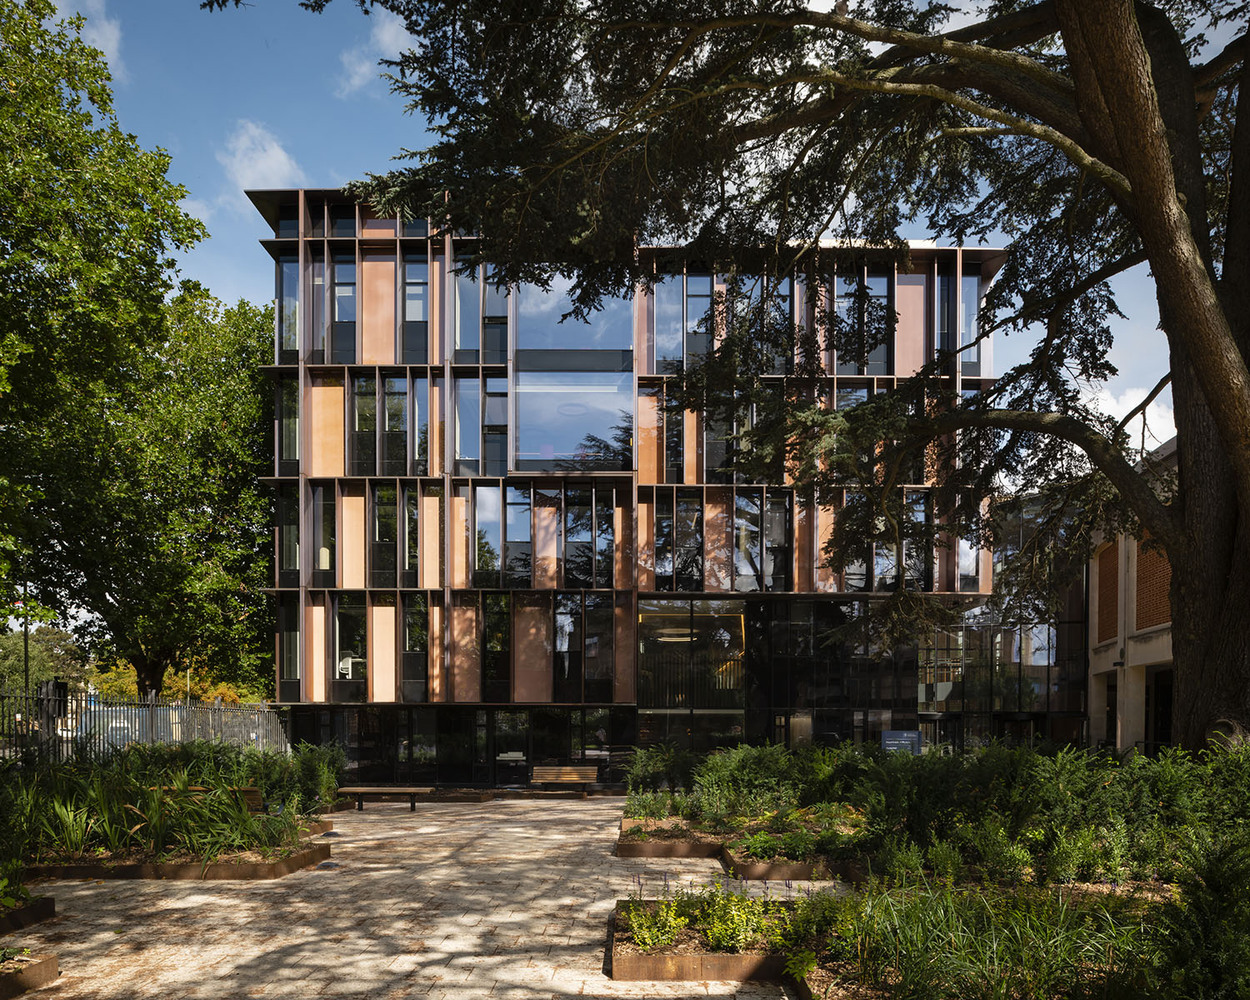 The Beecroft Building by HawkinsBrown